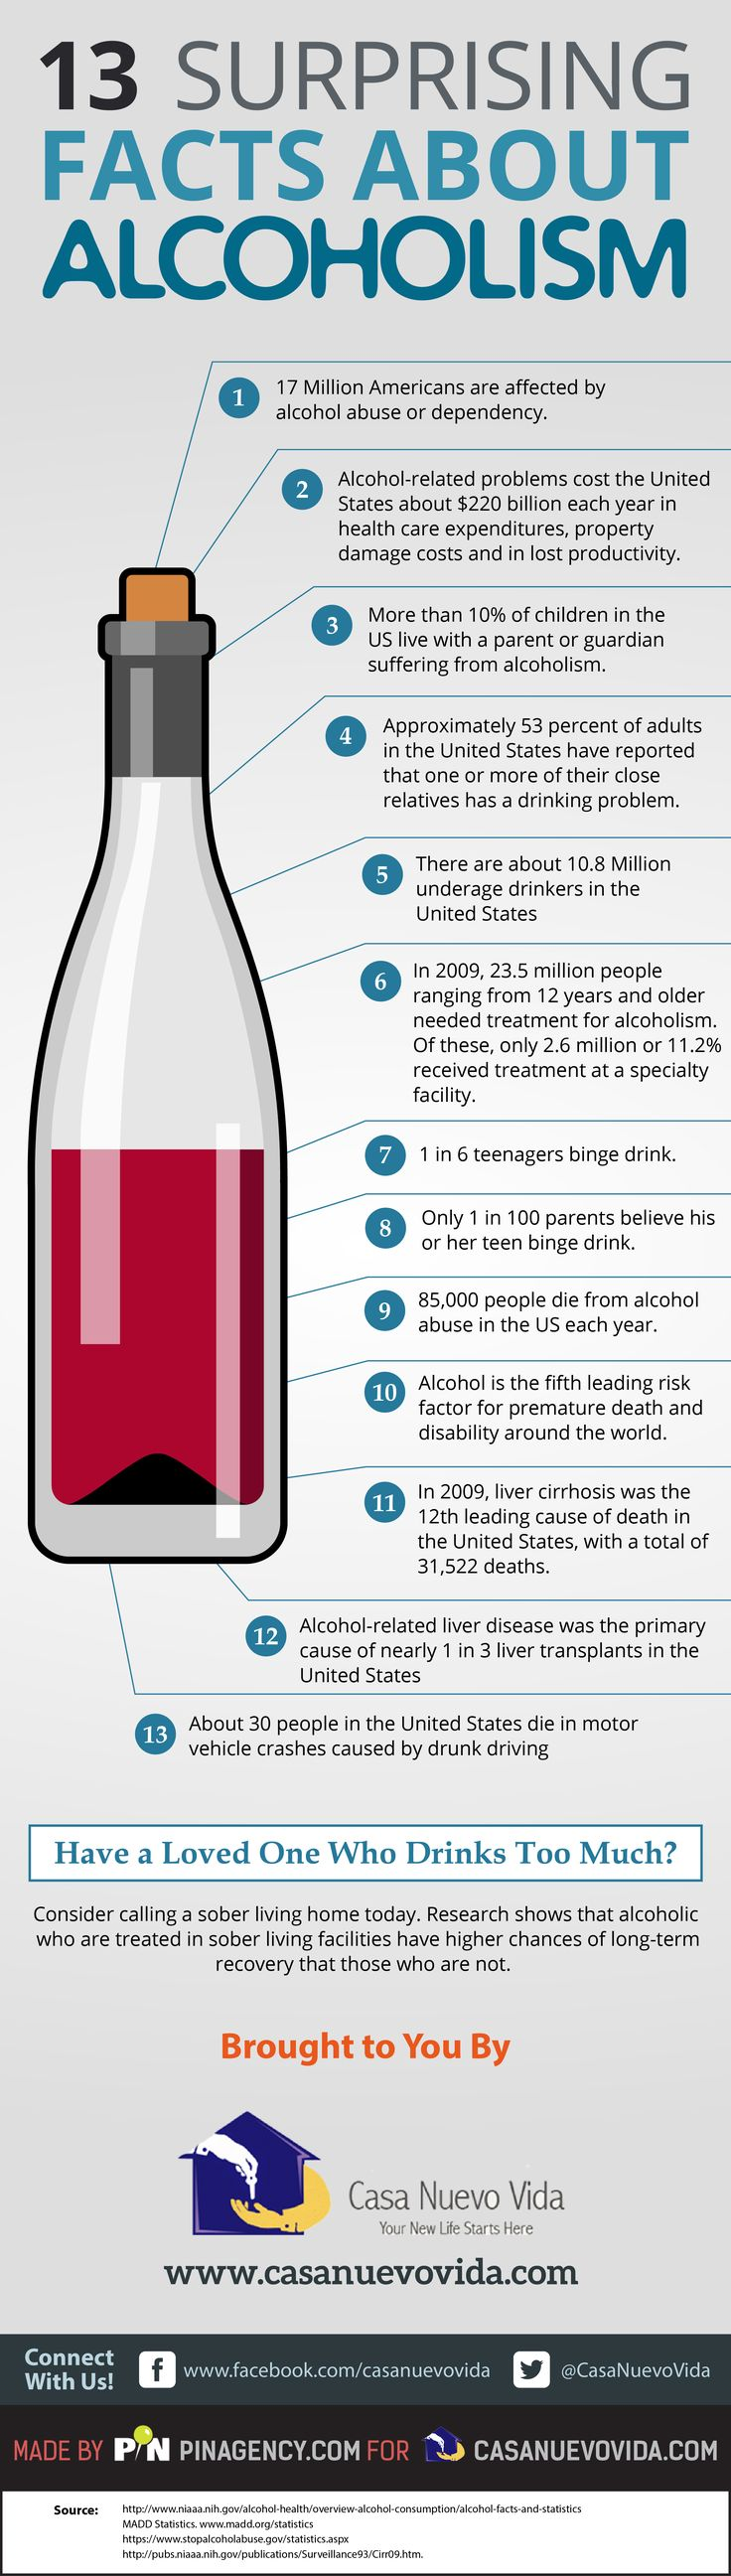 13 Surprising Facts About Alcoholism